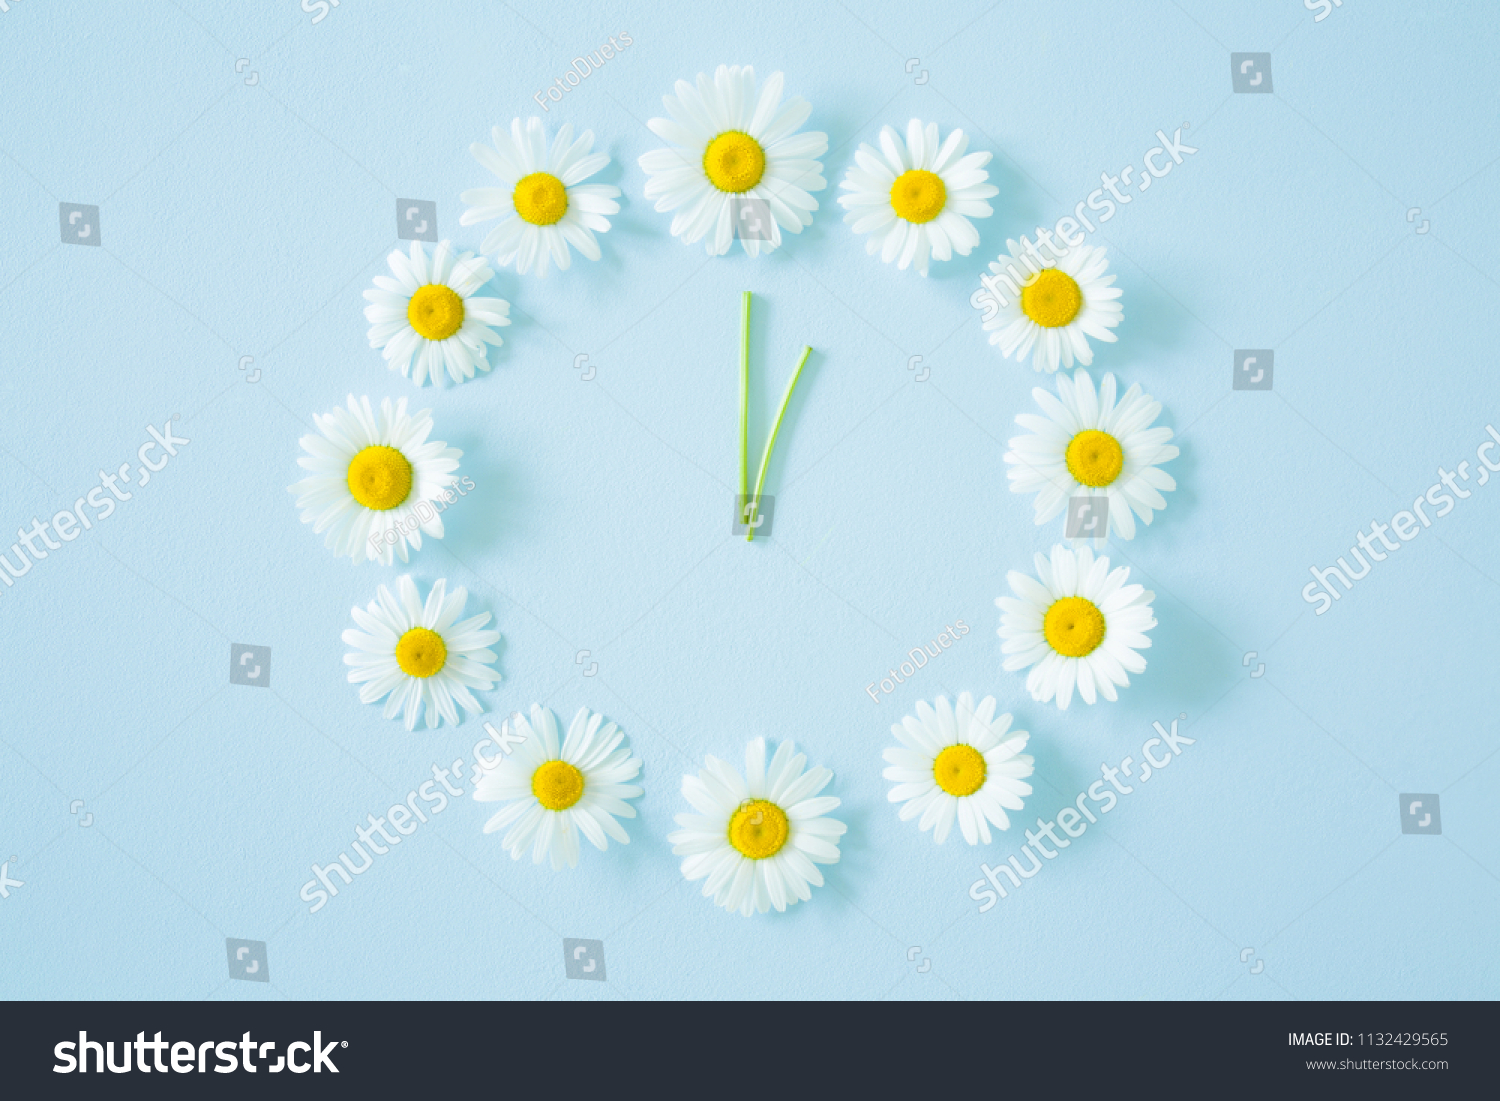 Flower clock created from fresh, beautiful white daisies on pastel blue background. Wild flowers. Soft light color. Time concept. #1132429565